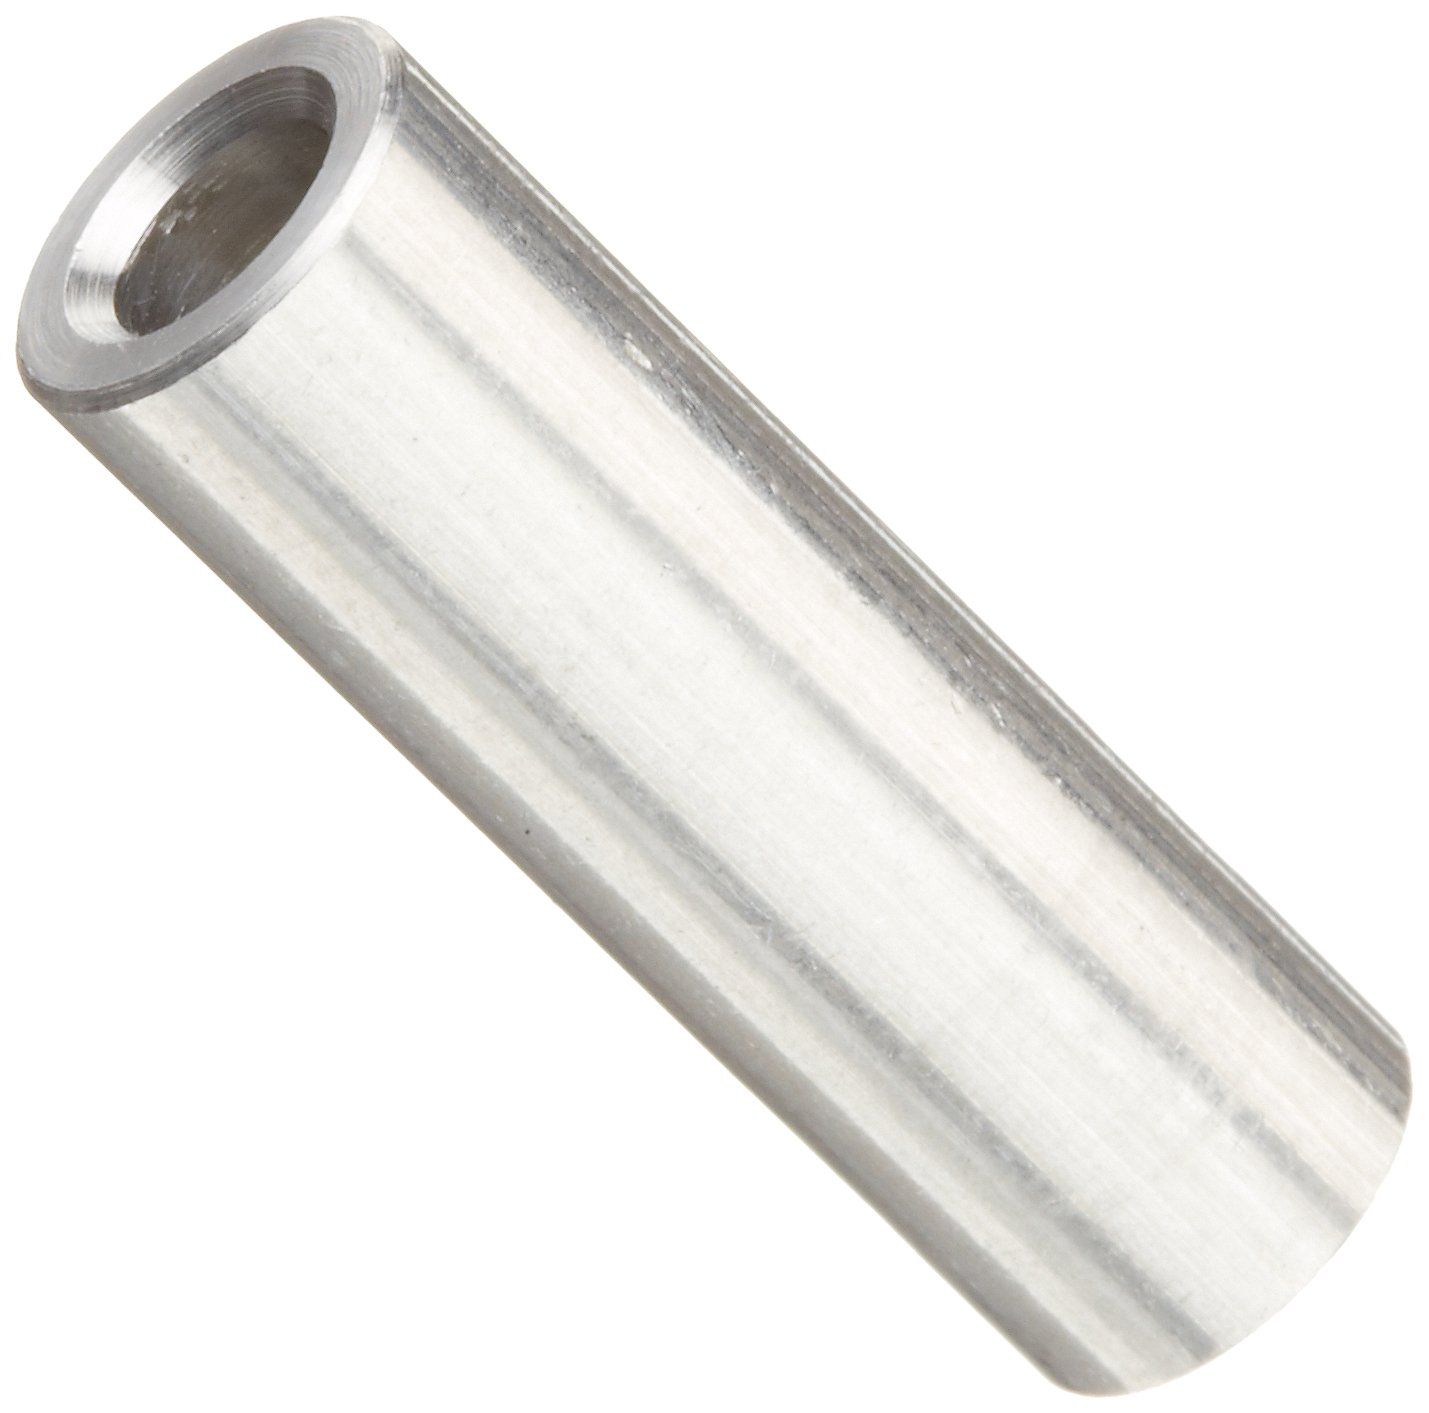 Aluminum Pack of 10 5//16 OD Plain Finish #8 Screw Size Round Spacer 0.166 ID 7//8 Length Made in US